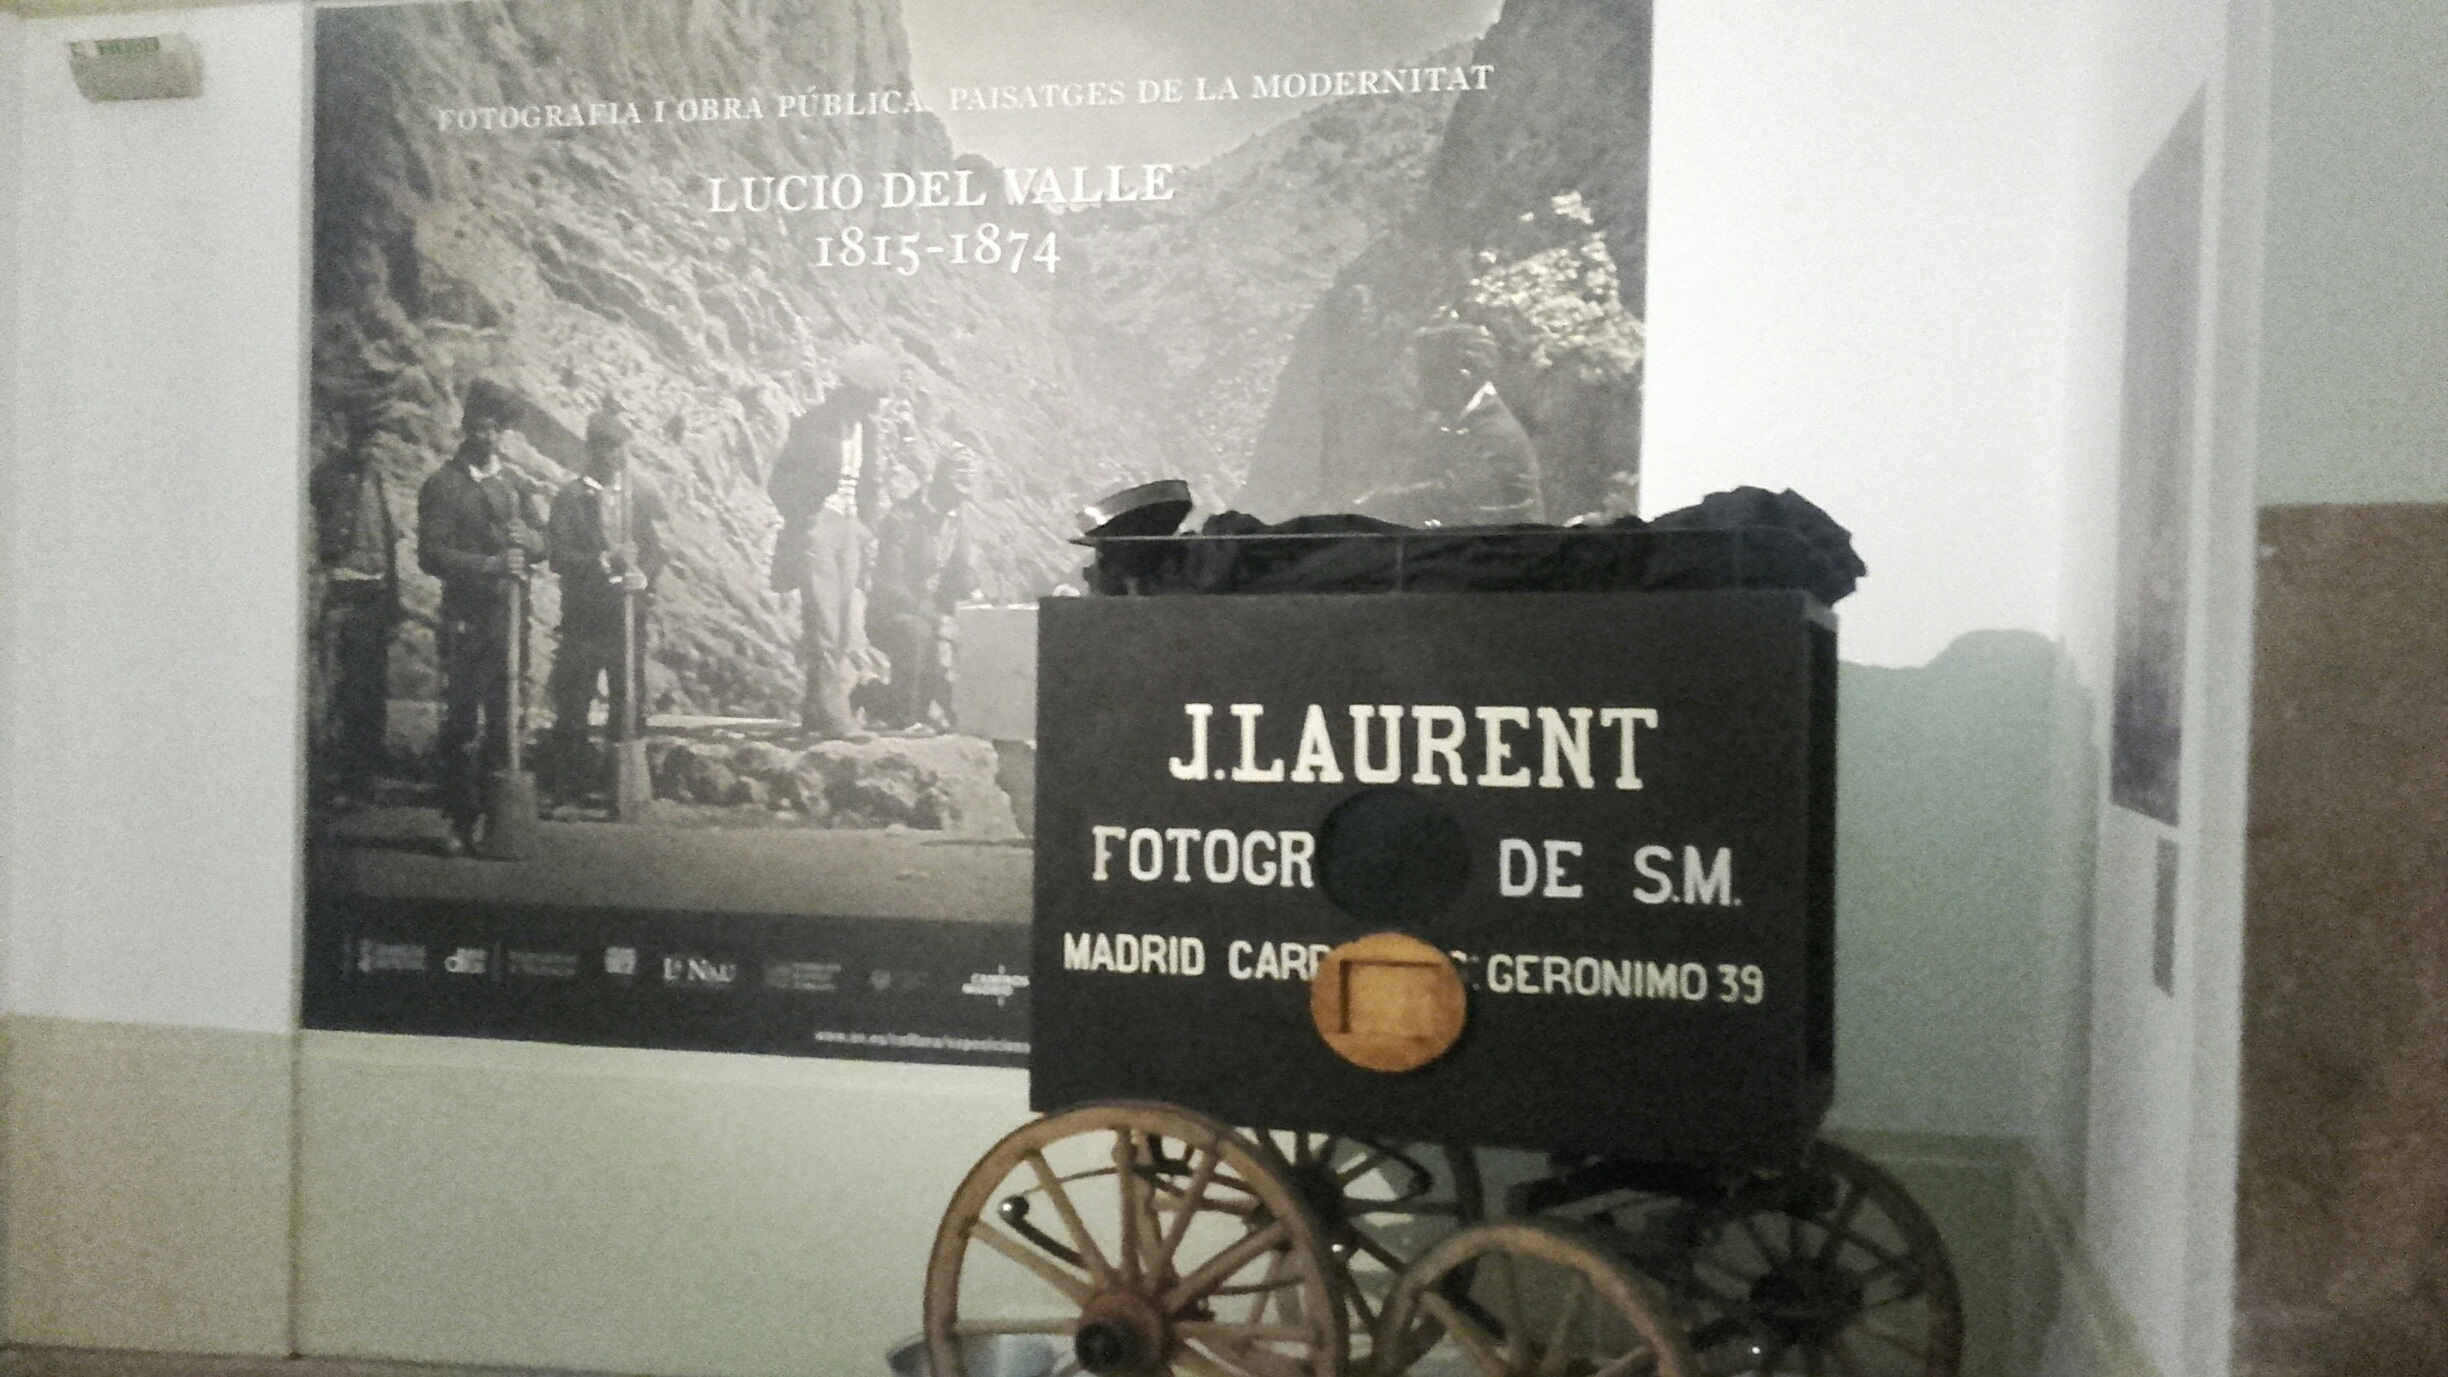 Photography and public works. Modern landscapes. Lucio del Valle. Exhibition